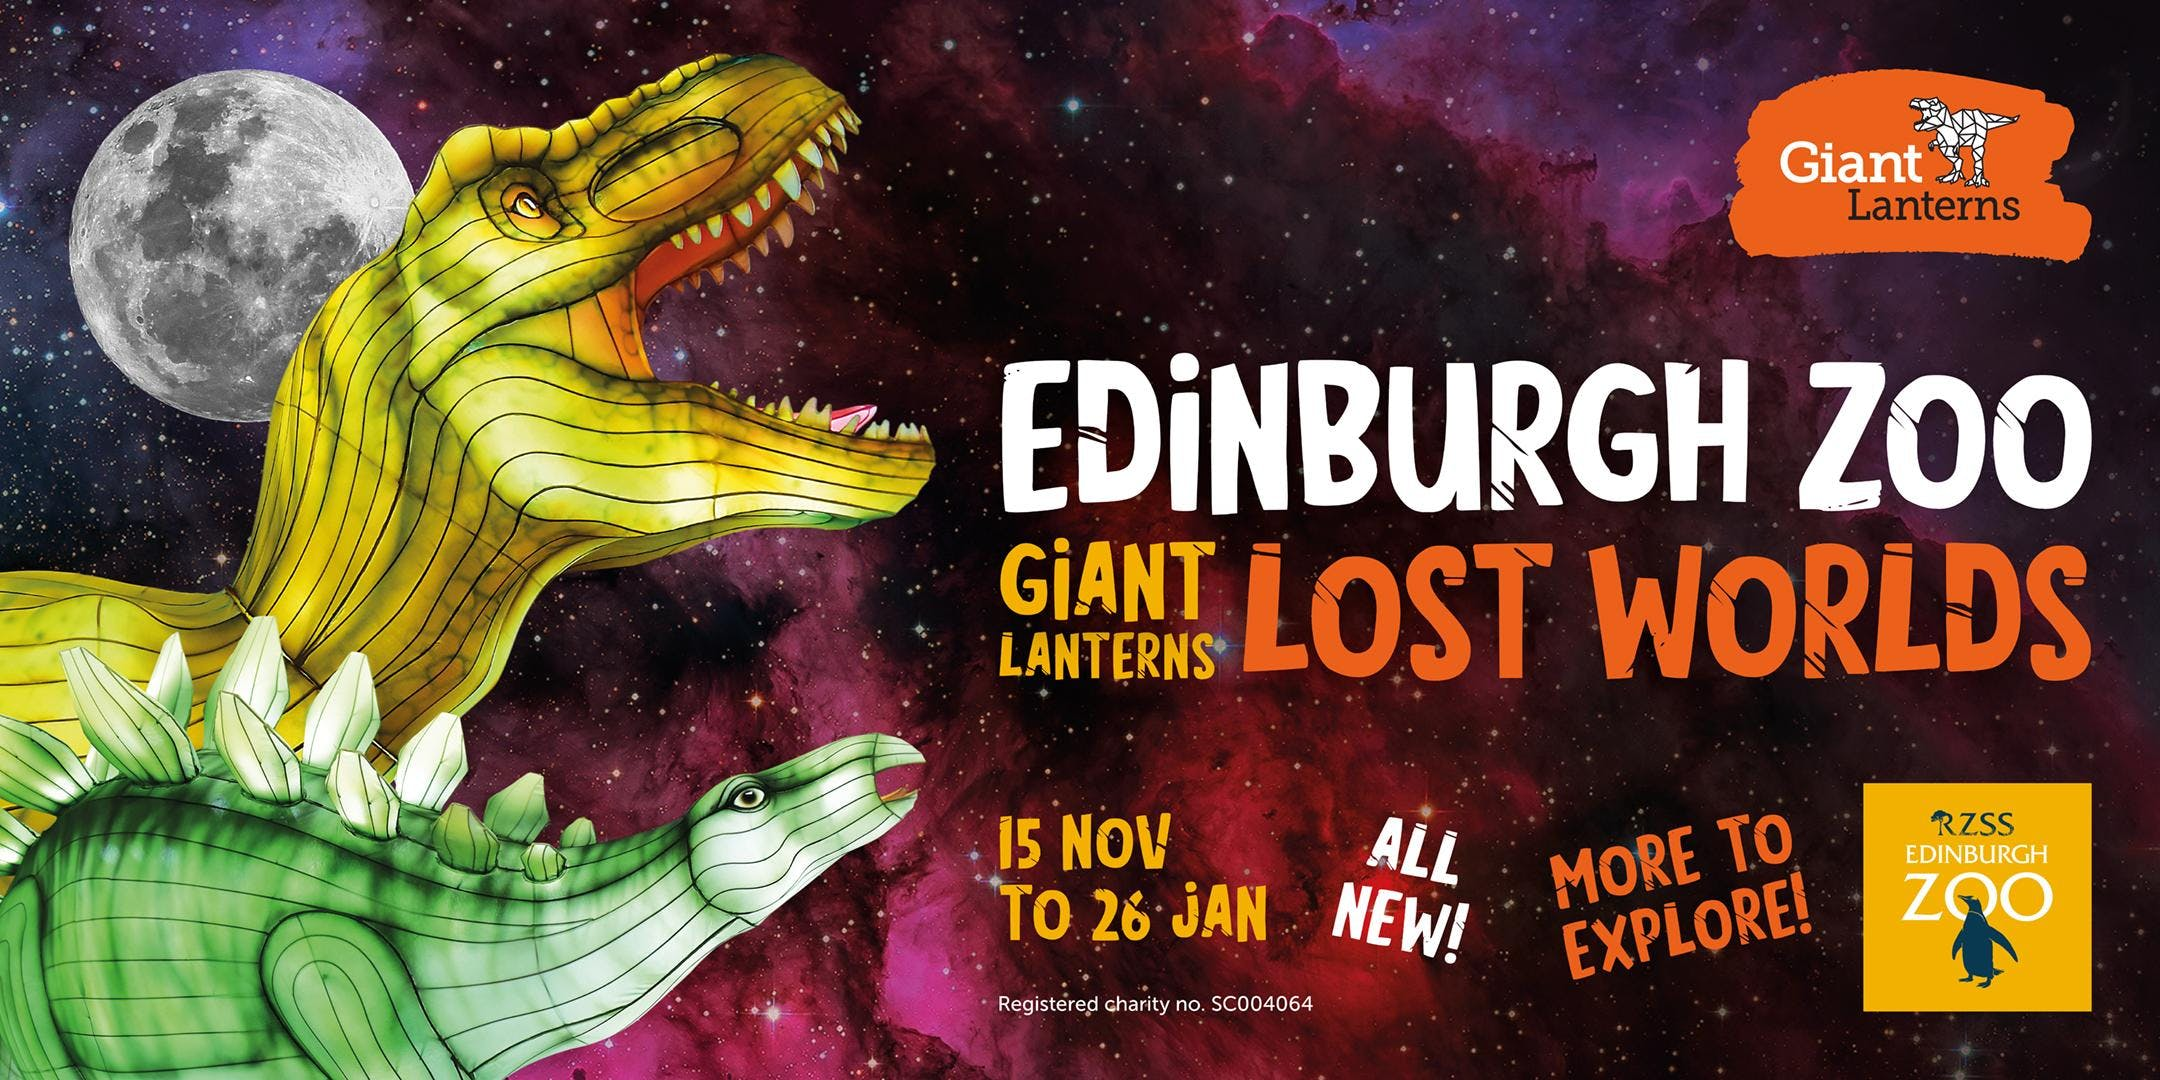 Giant Lanterns - Lost Worlds -24th Jan